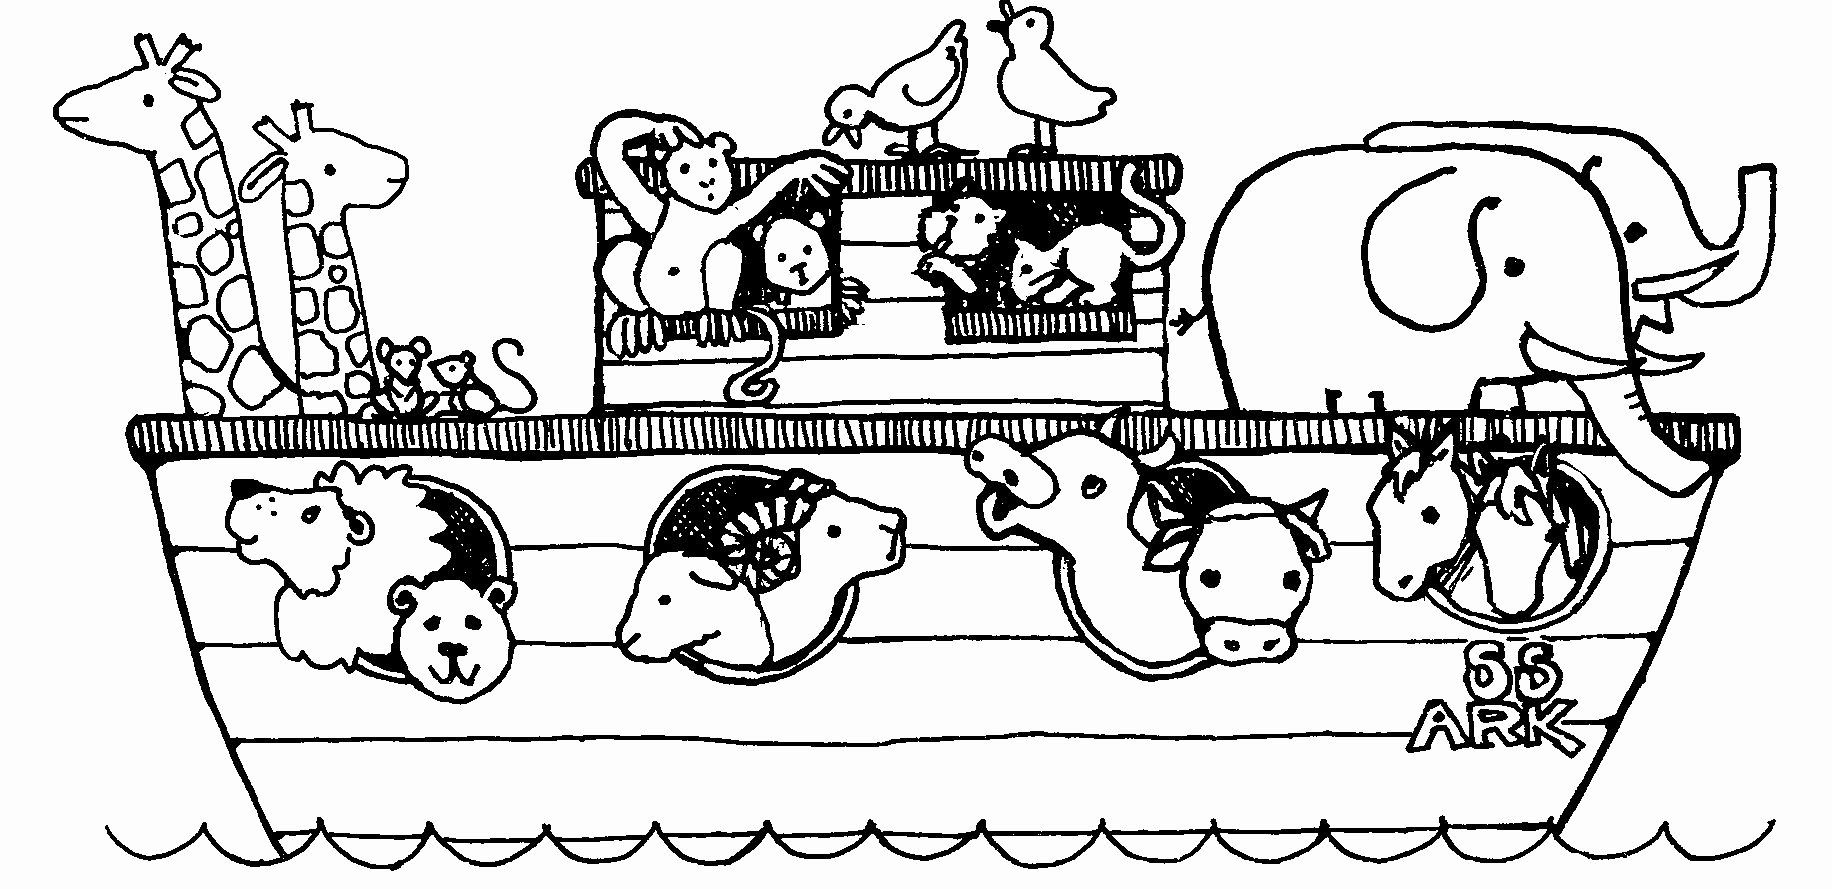 32 Noah S Ark Rainbow Coloring Page With Images